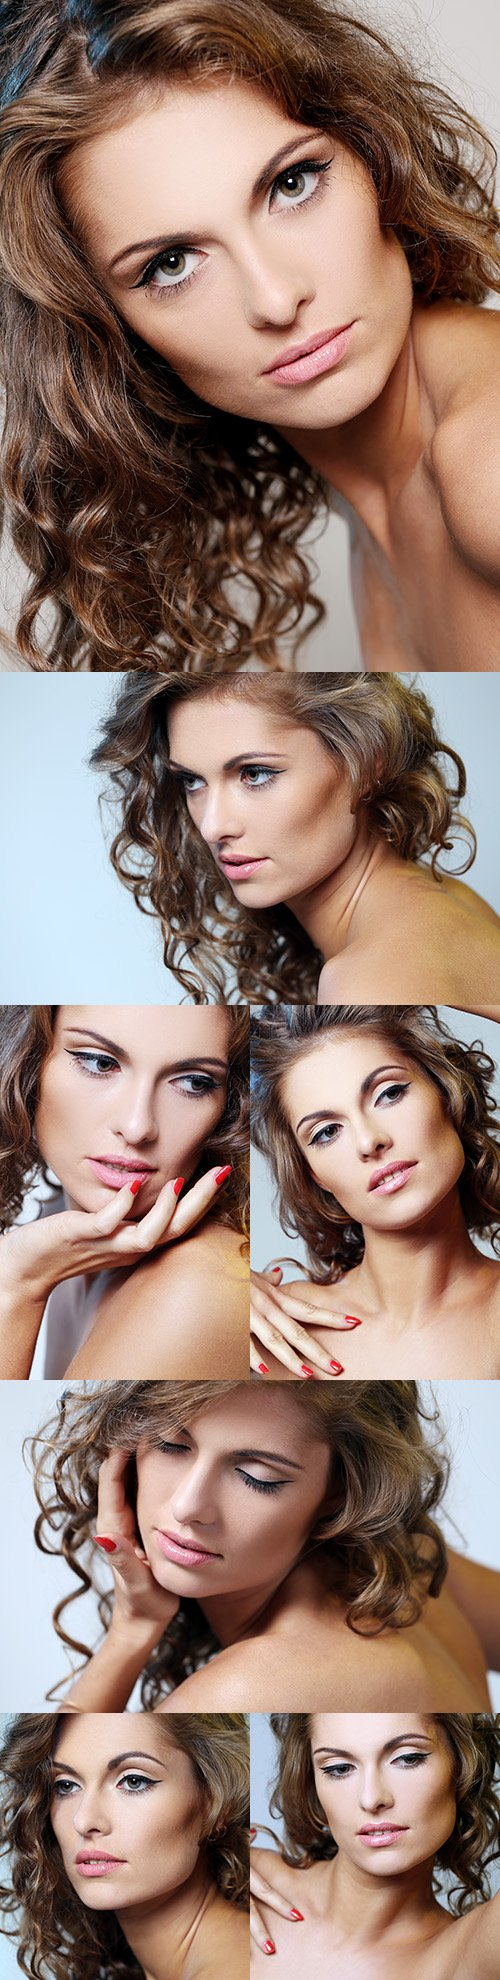 Beautiful girl with makeup with hanging hair